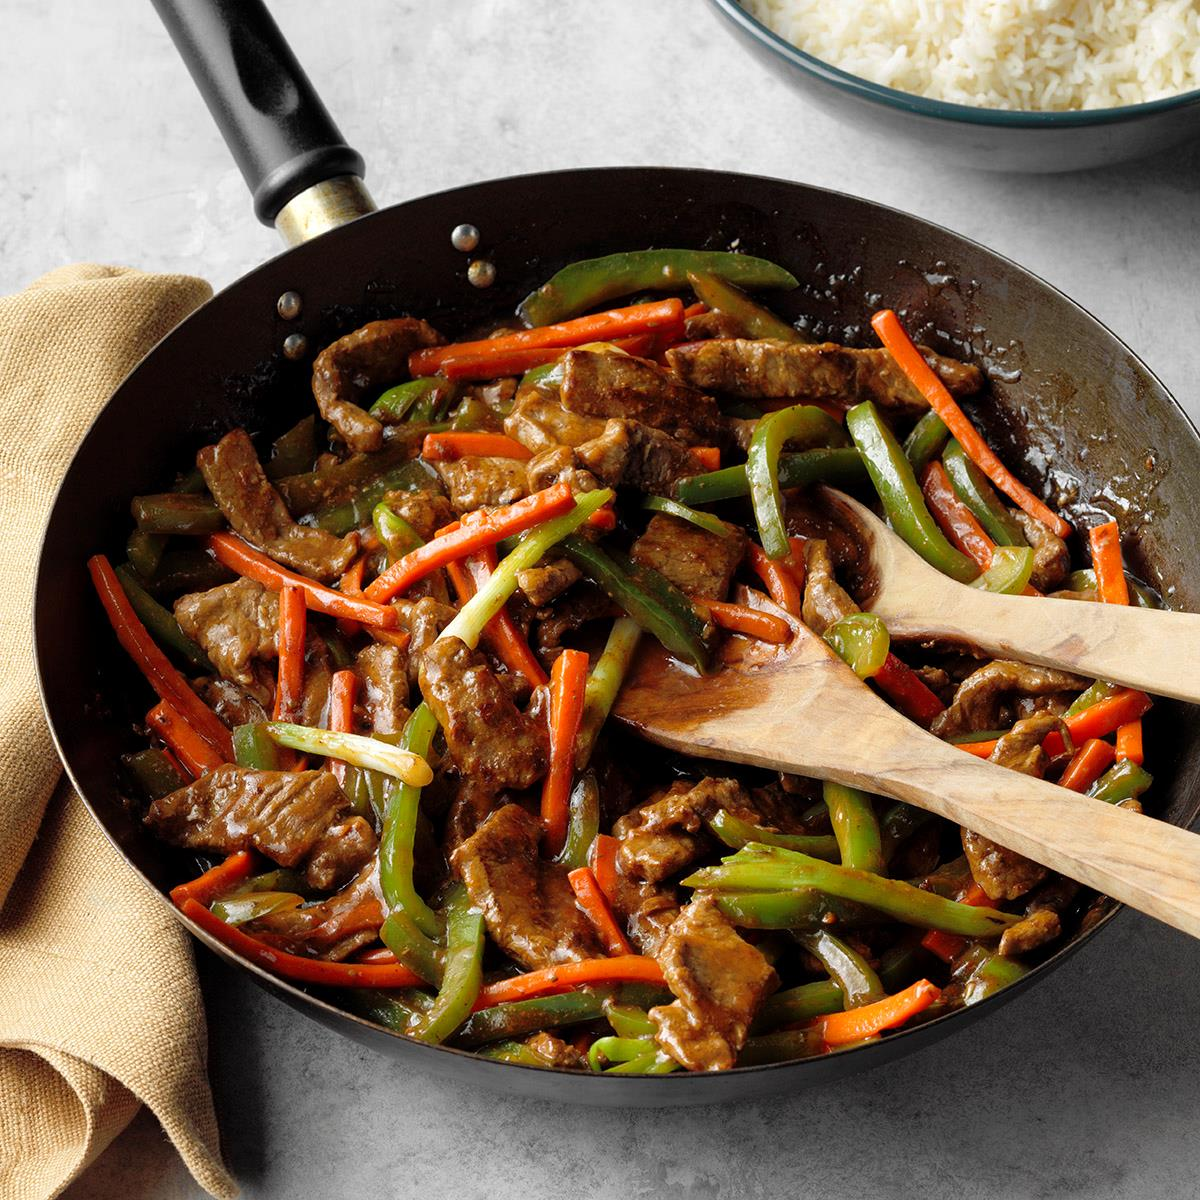 Steak Stir Fry Recipe How To Make It Taste Of Home